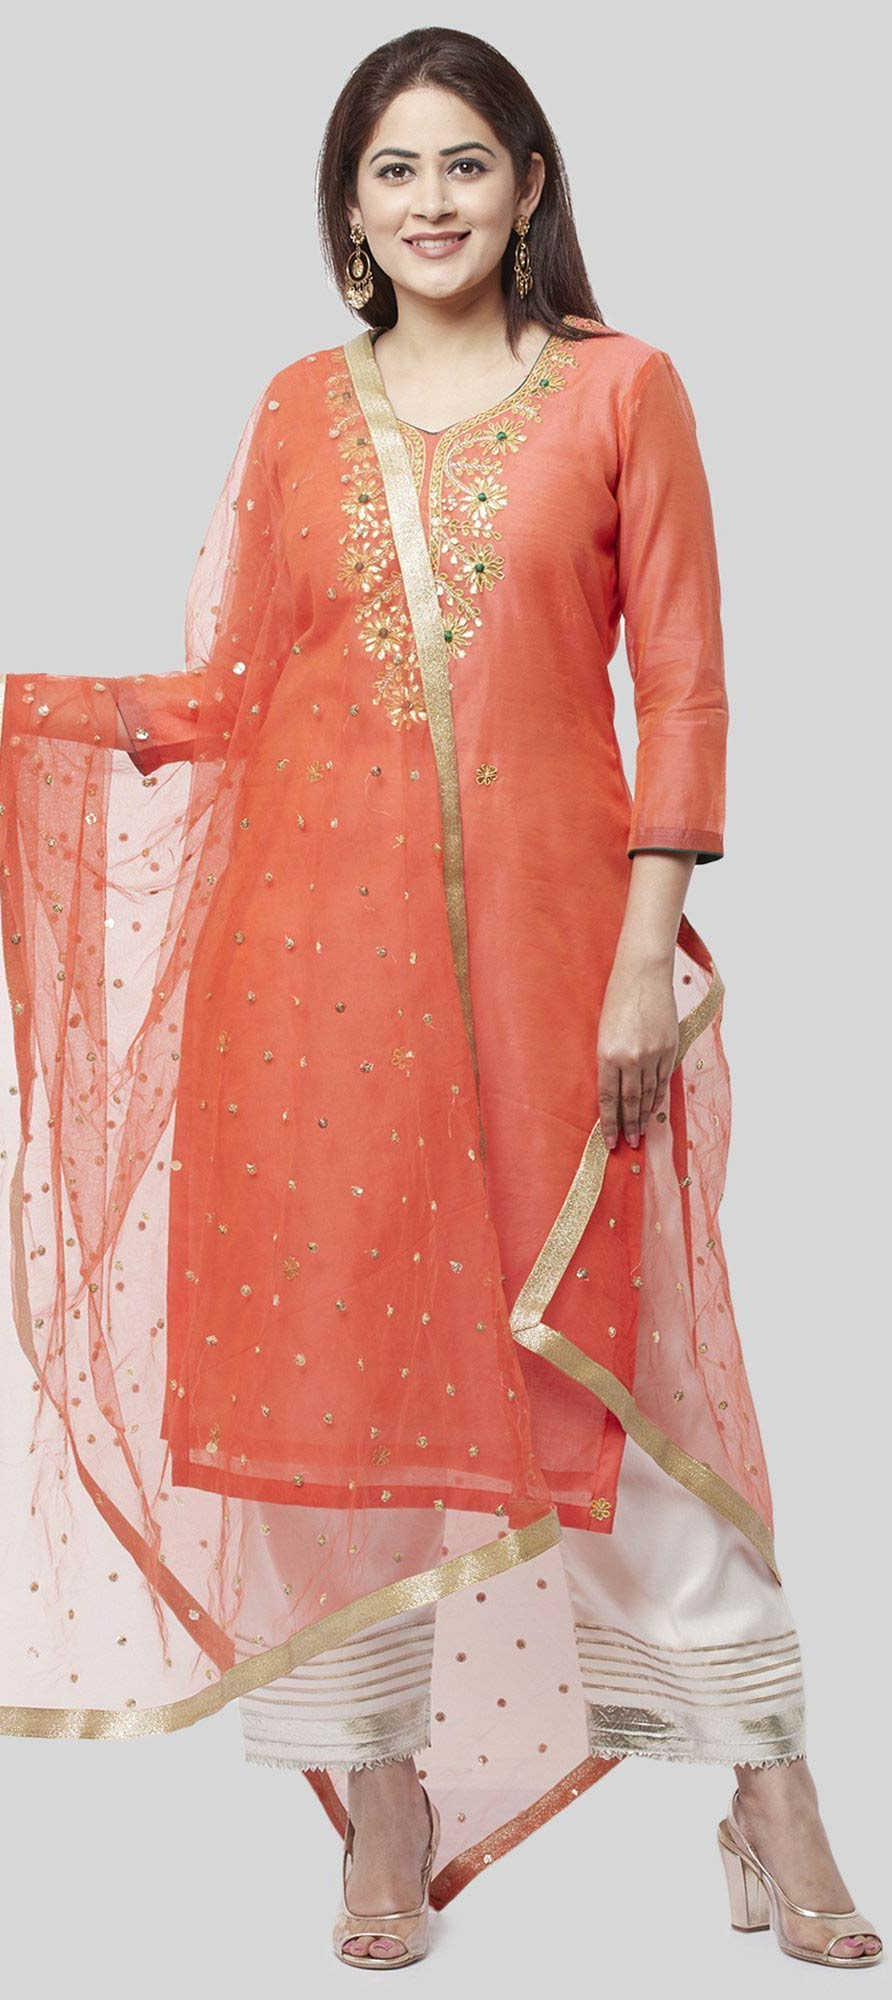 Chanderi Silk Party Wear Salwar Kameez in Orange with Embroidered work